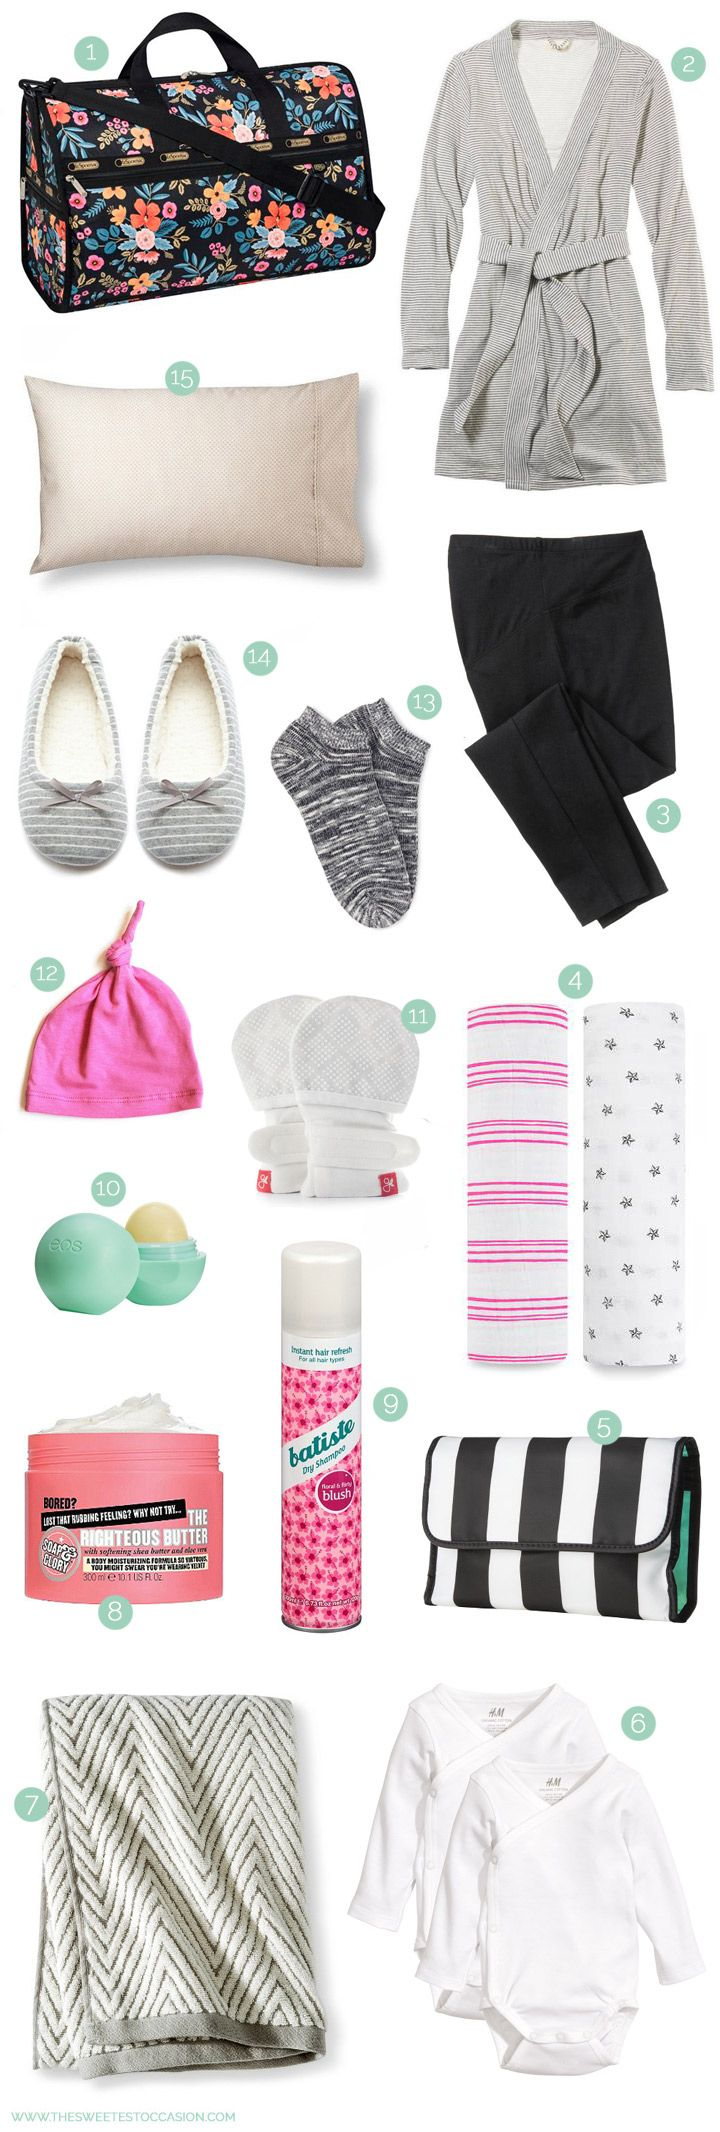 What to Pack in Your Hospital Bag from @cydconverse